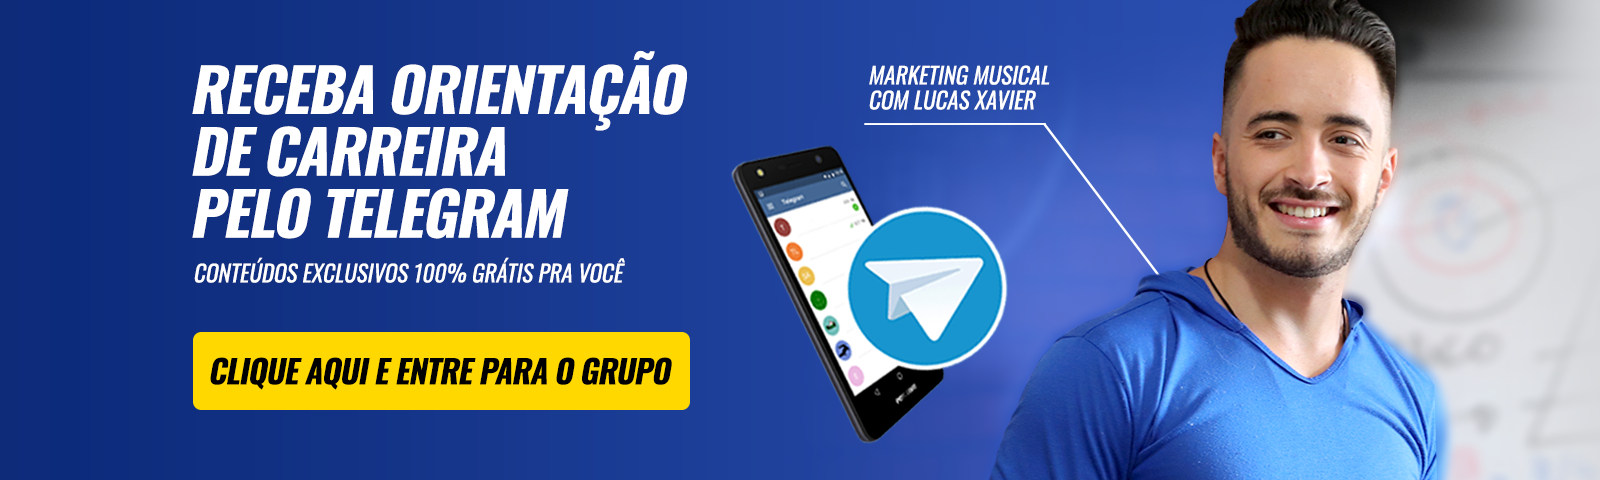 Marketing Musical com Lucas Xavier